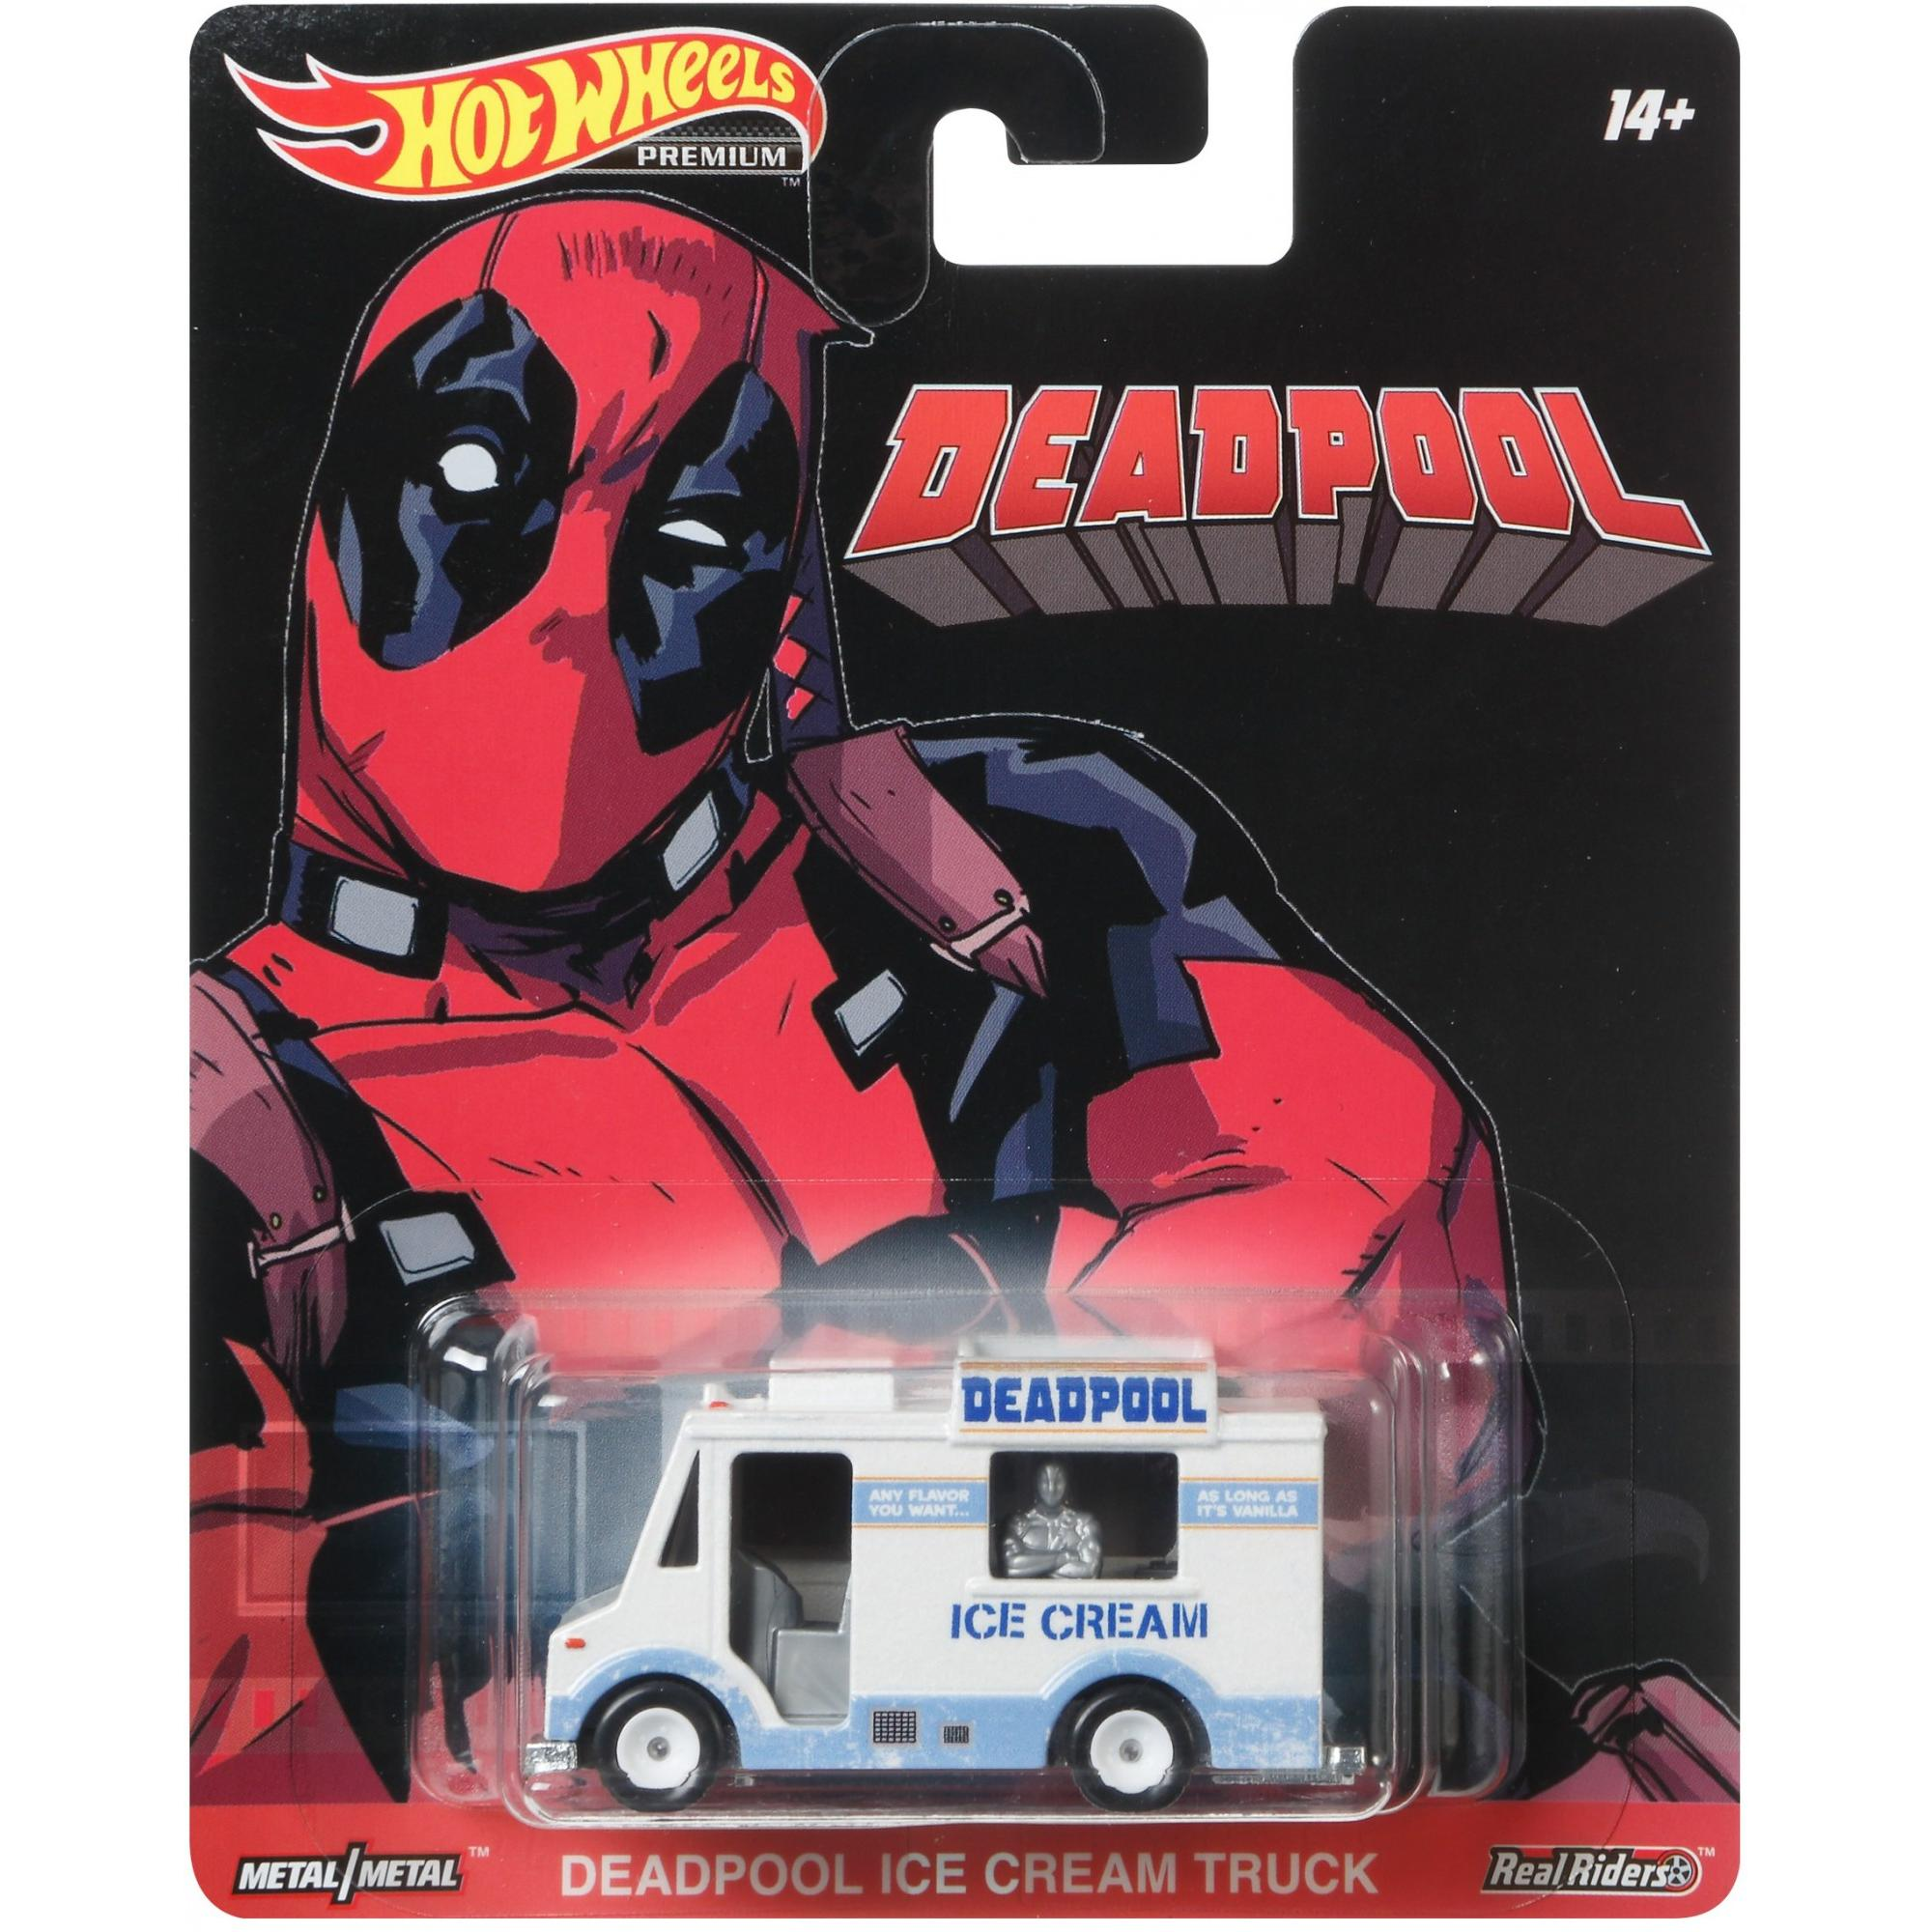 Deadpool Ice Cream Truck 1:64 Scale Die-Cast Car by Hot Wheels -Hot Wheels - India - www.superherotoystore.com